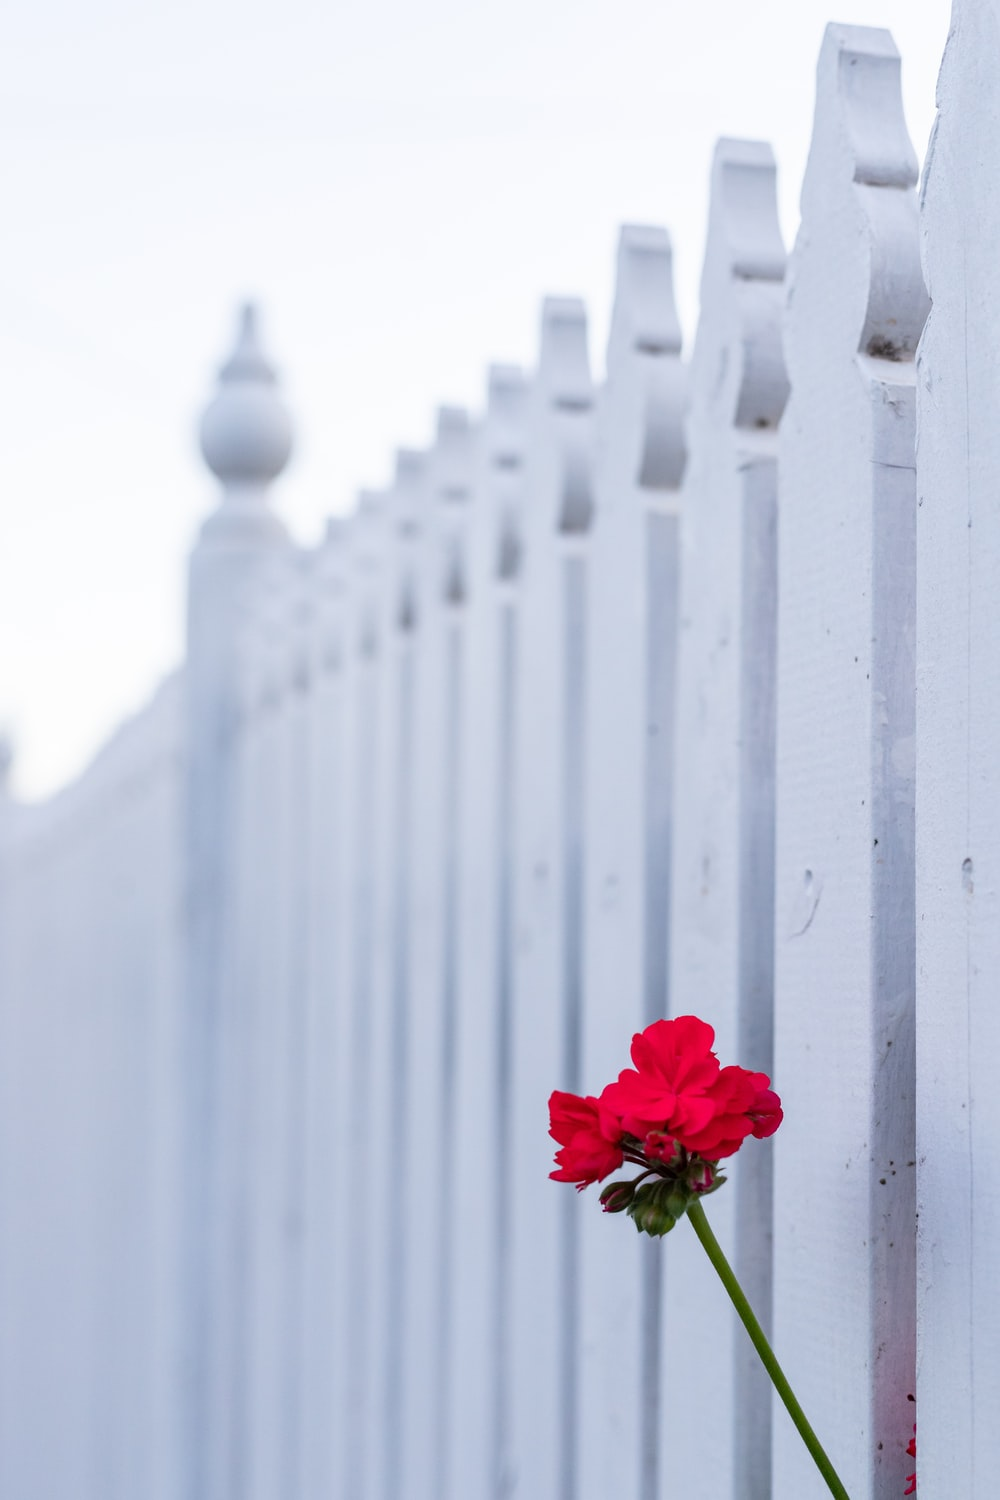 red rose on white wooden fence